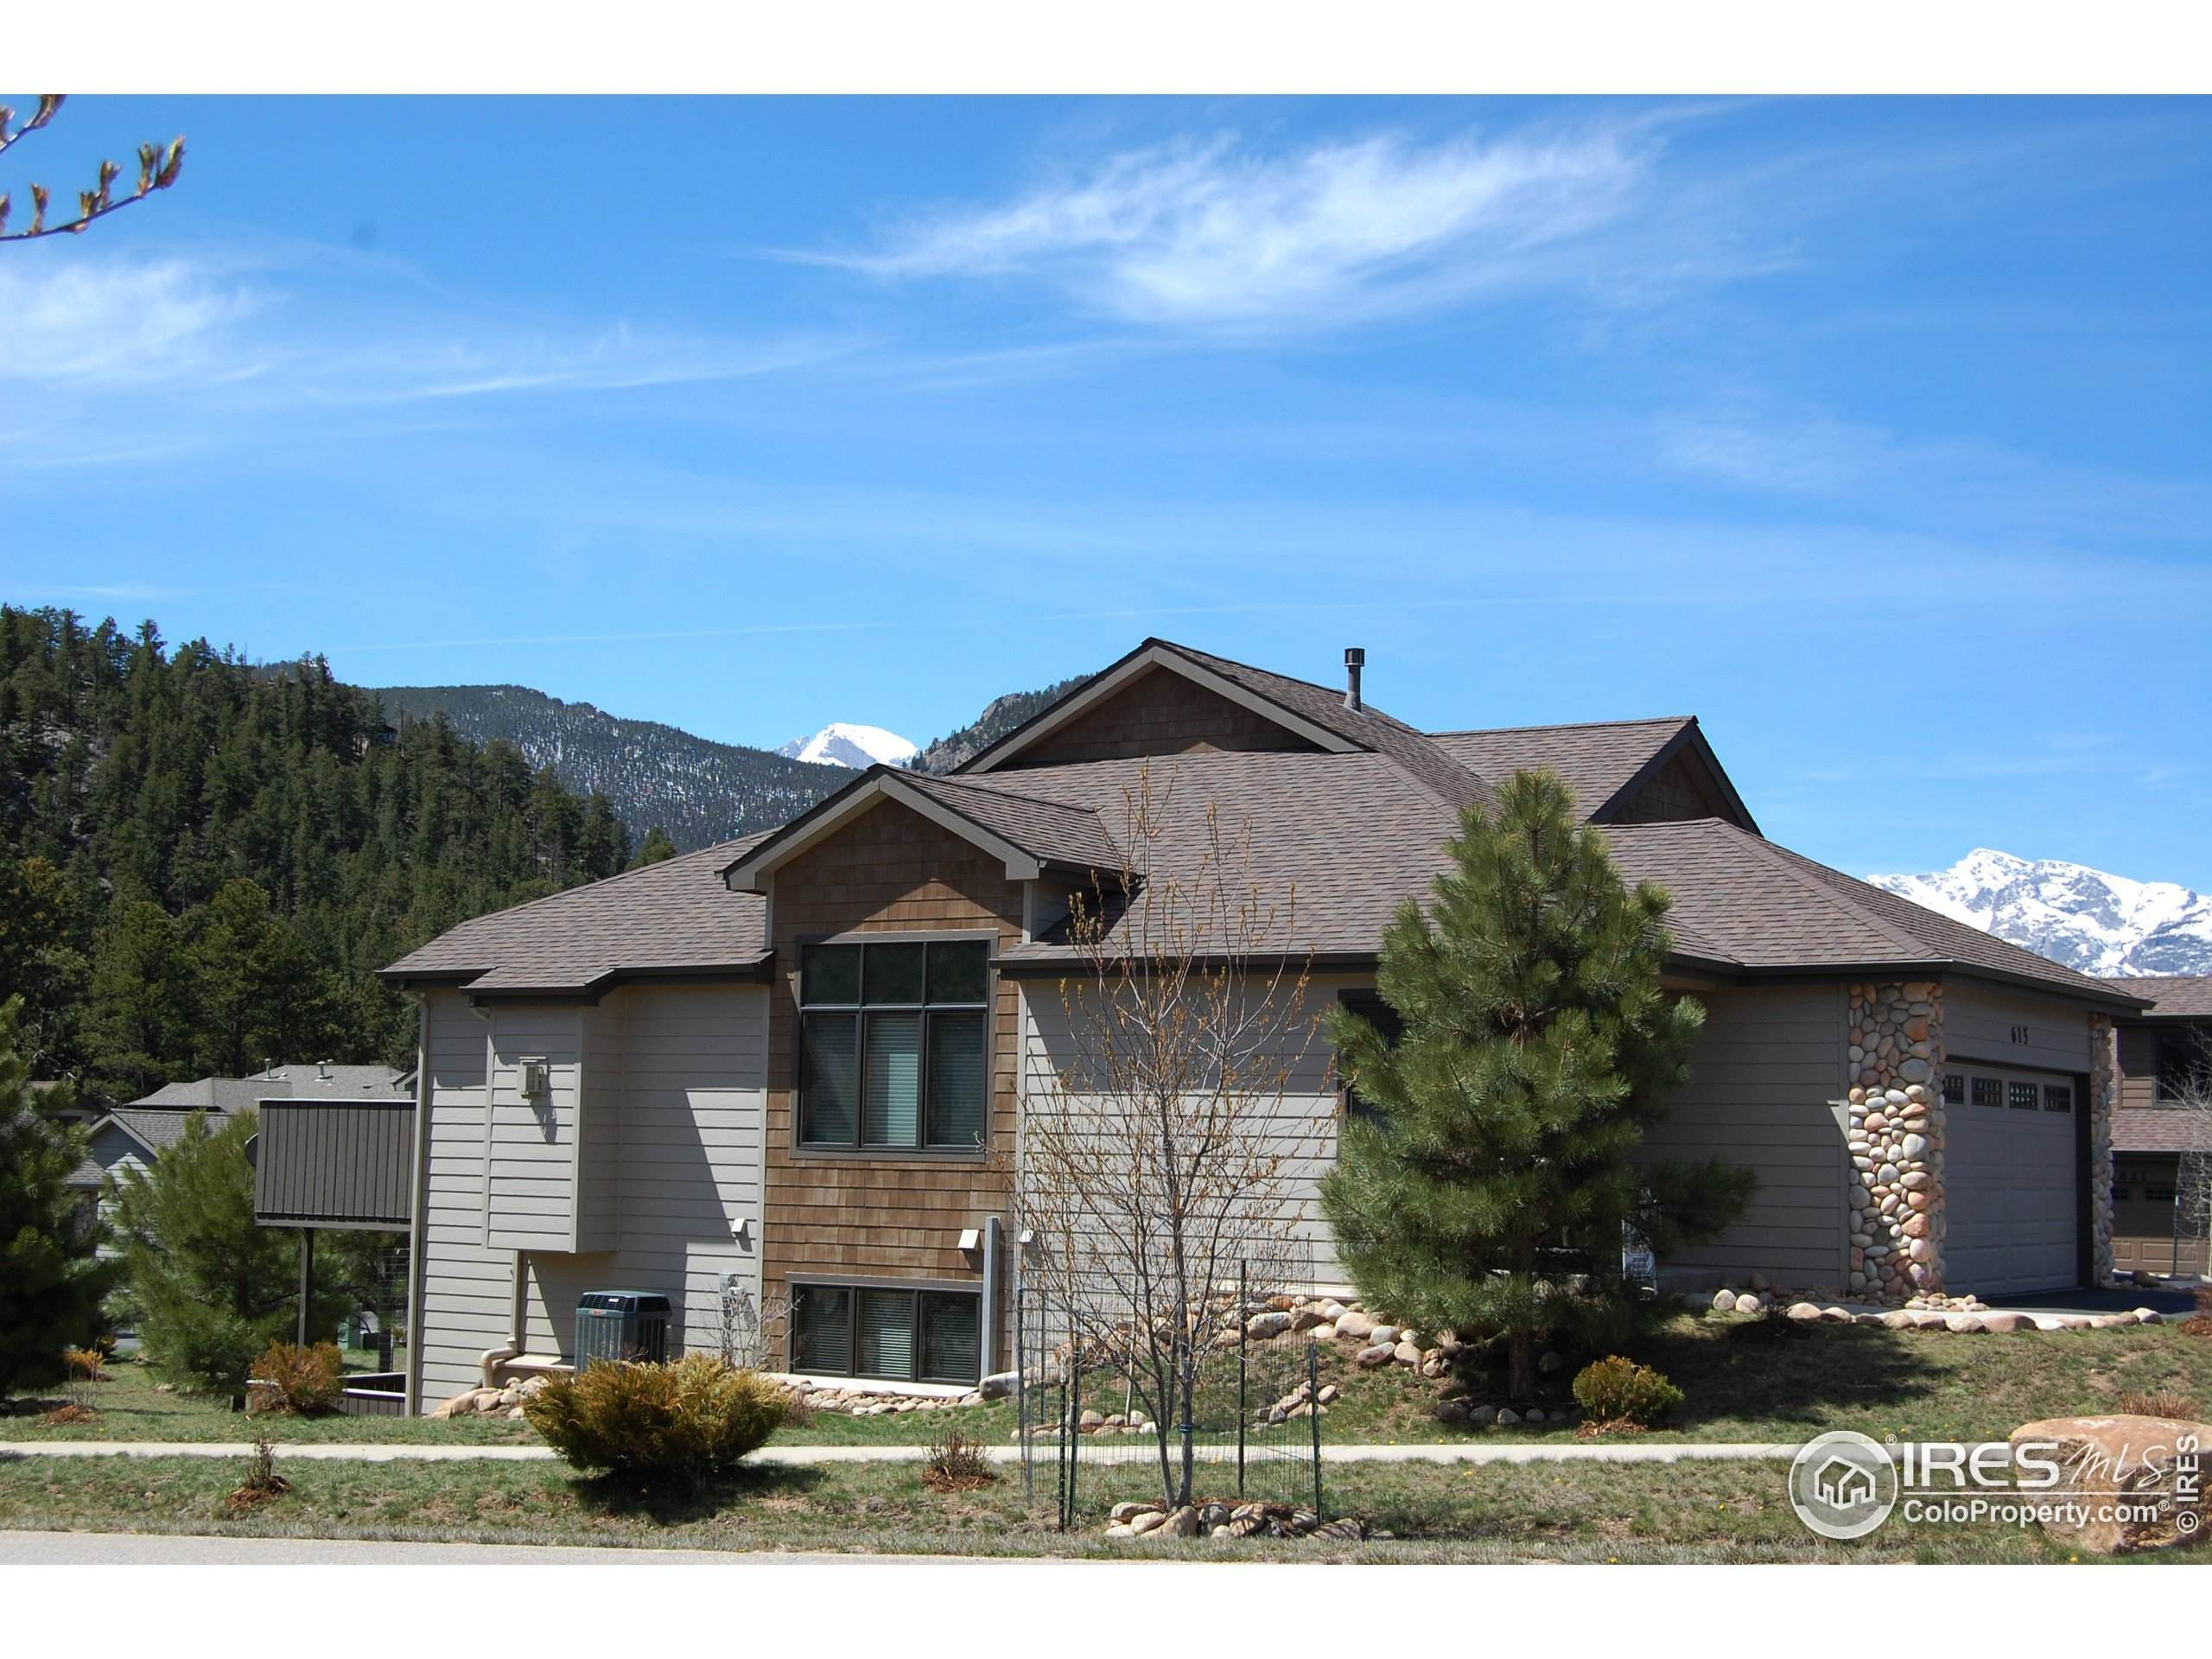 302 N Meldrum St #311, Fort Collins, CO 80521 (MLS #921884) :: 8z Real Estate